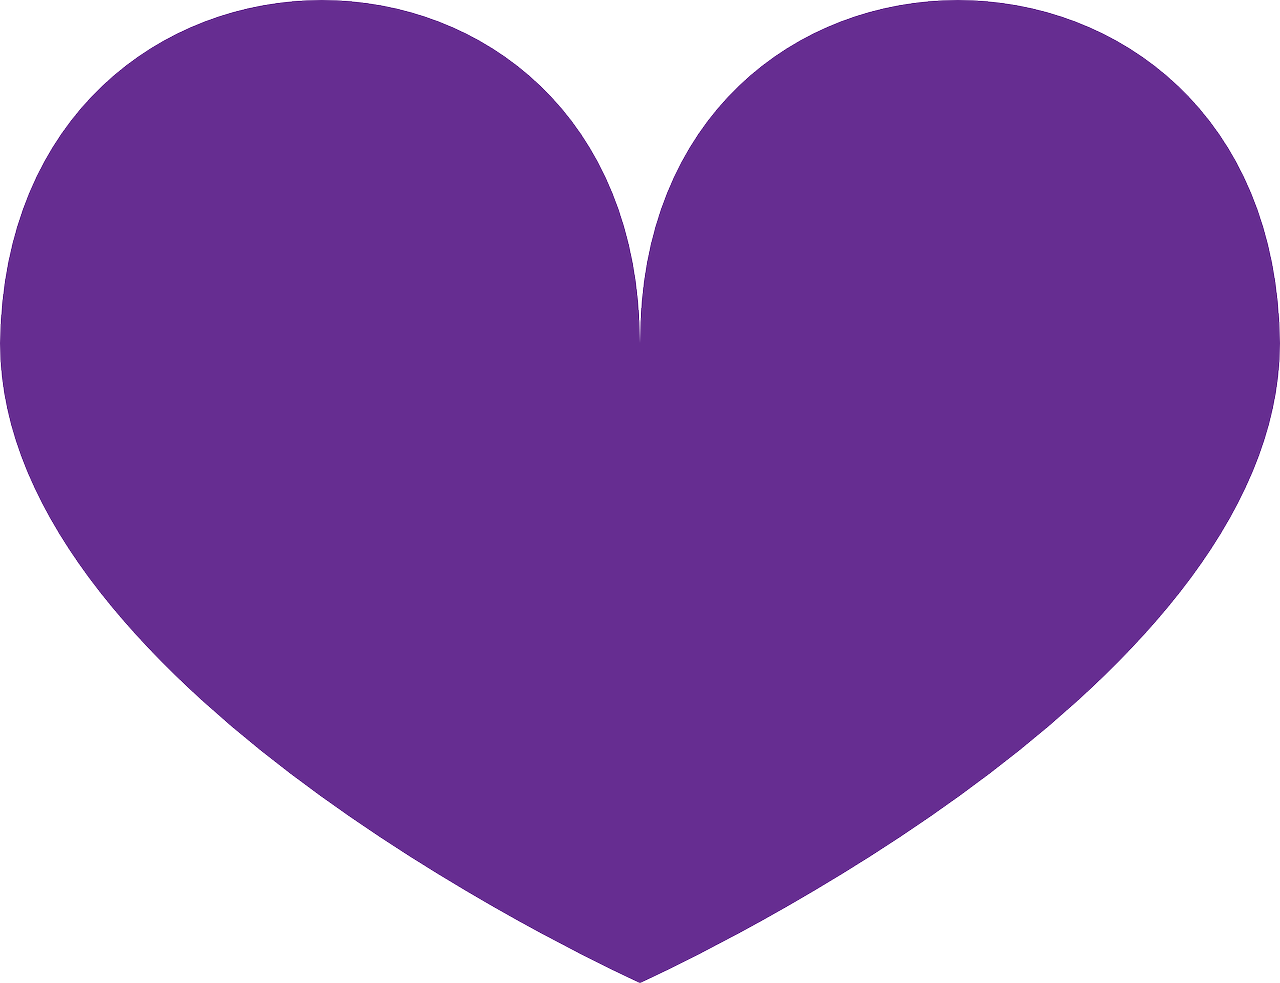 purple heart love free photo